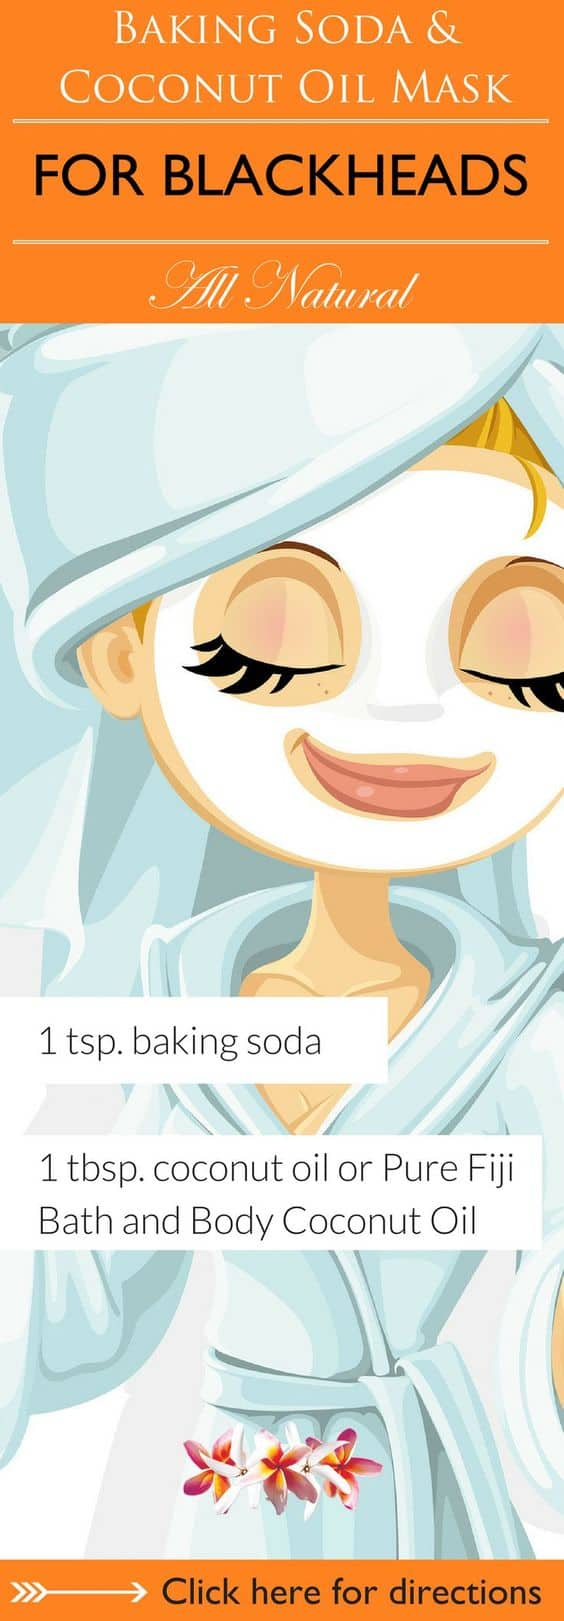 This DIY face mask for pores uses baking soda as one of its main ingredients. It has coconut oil, too, to ensure that your skin remains soft and supple.